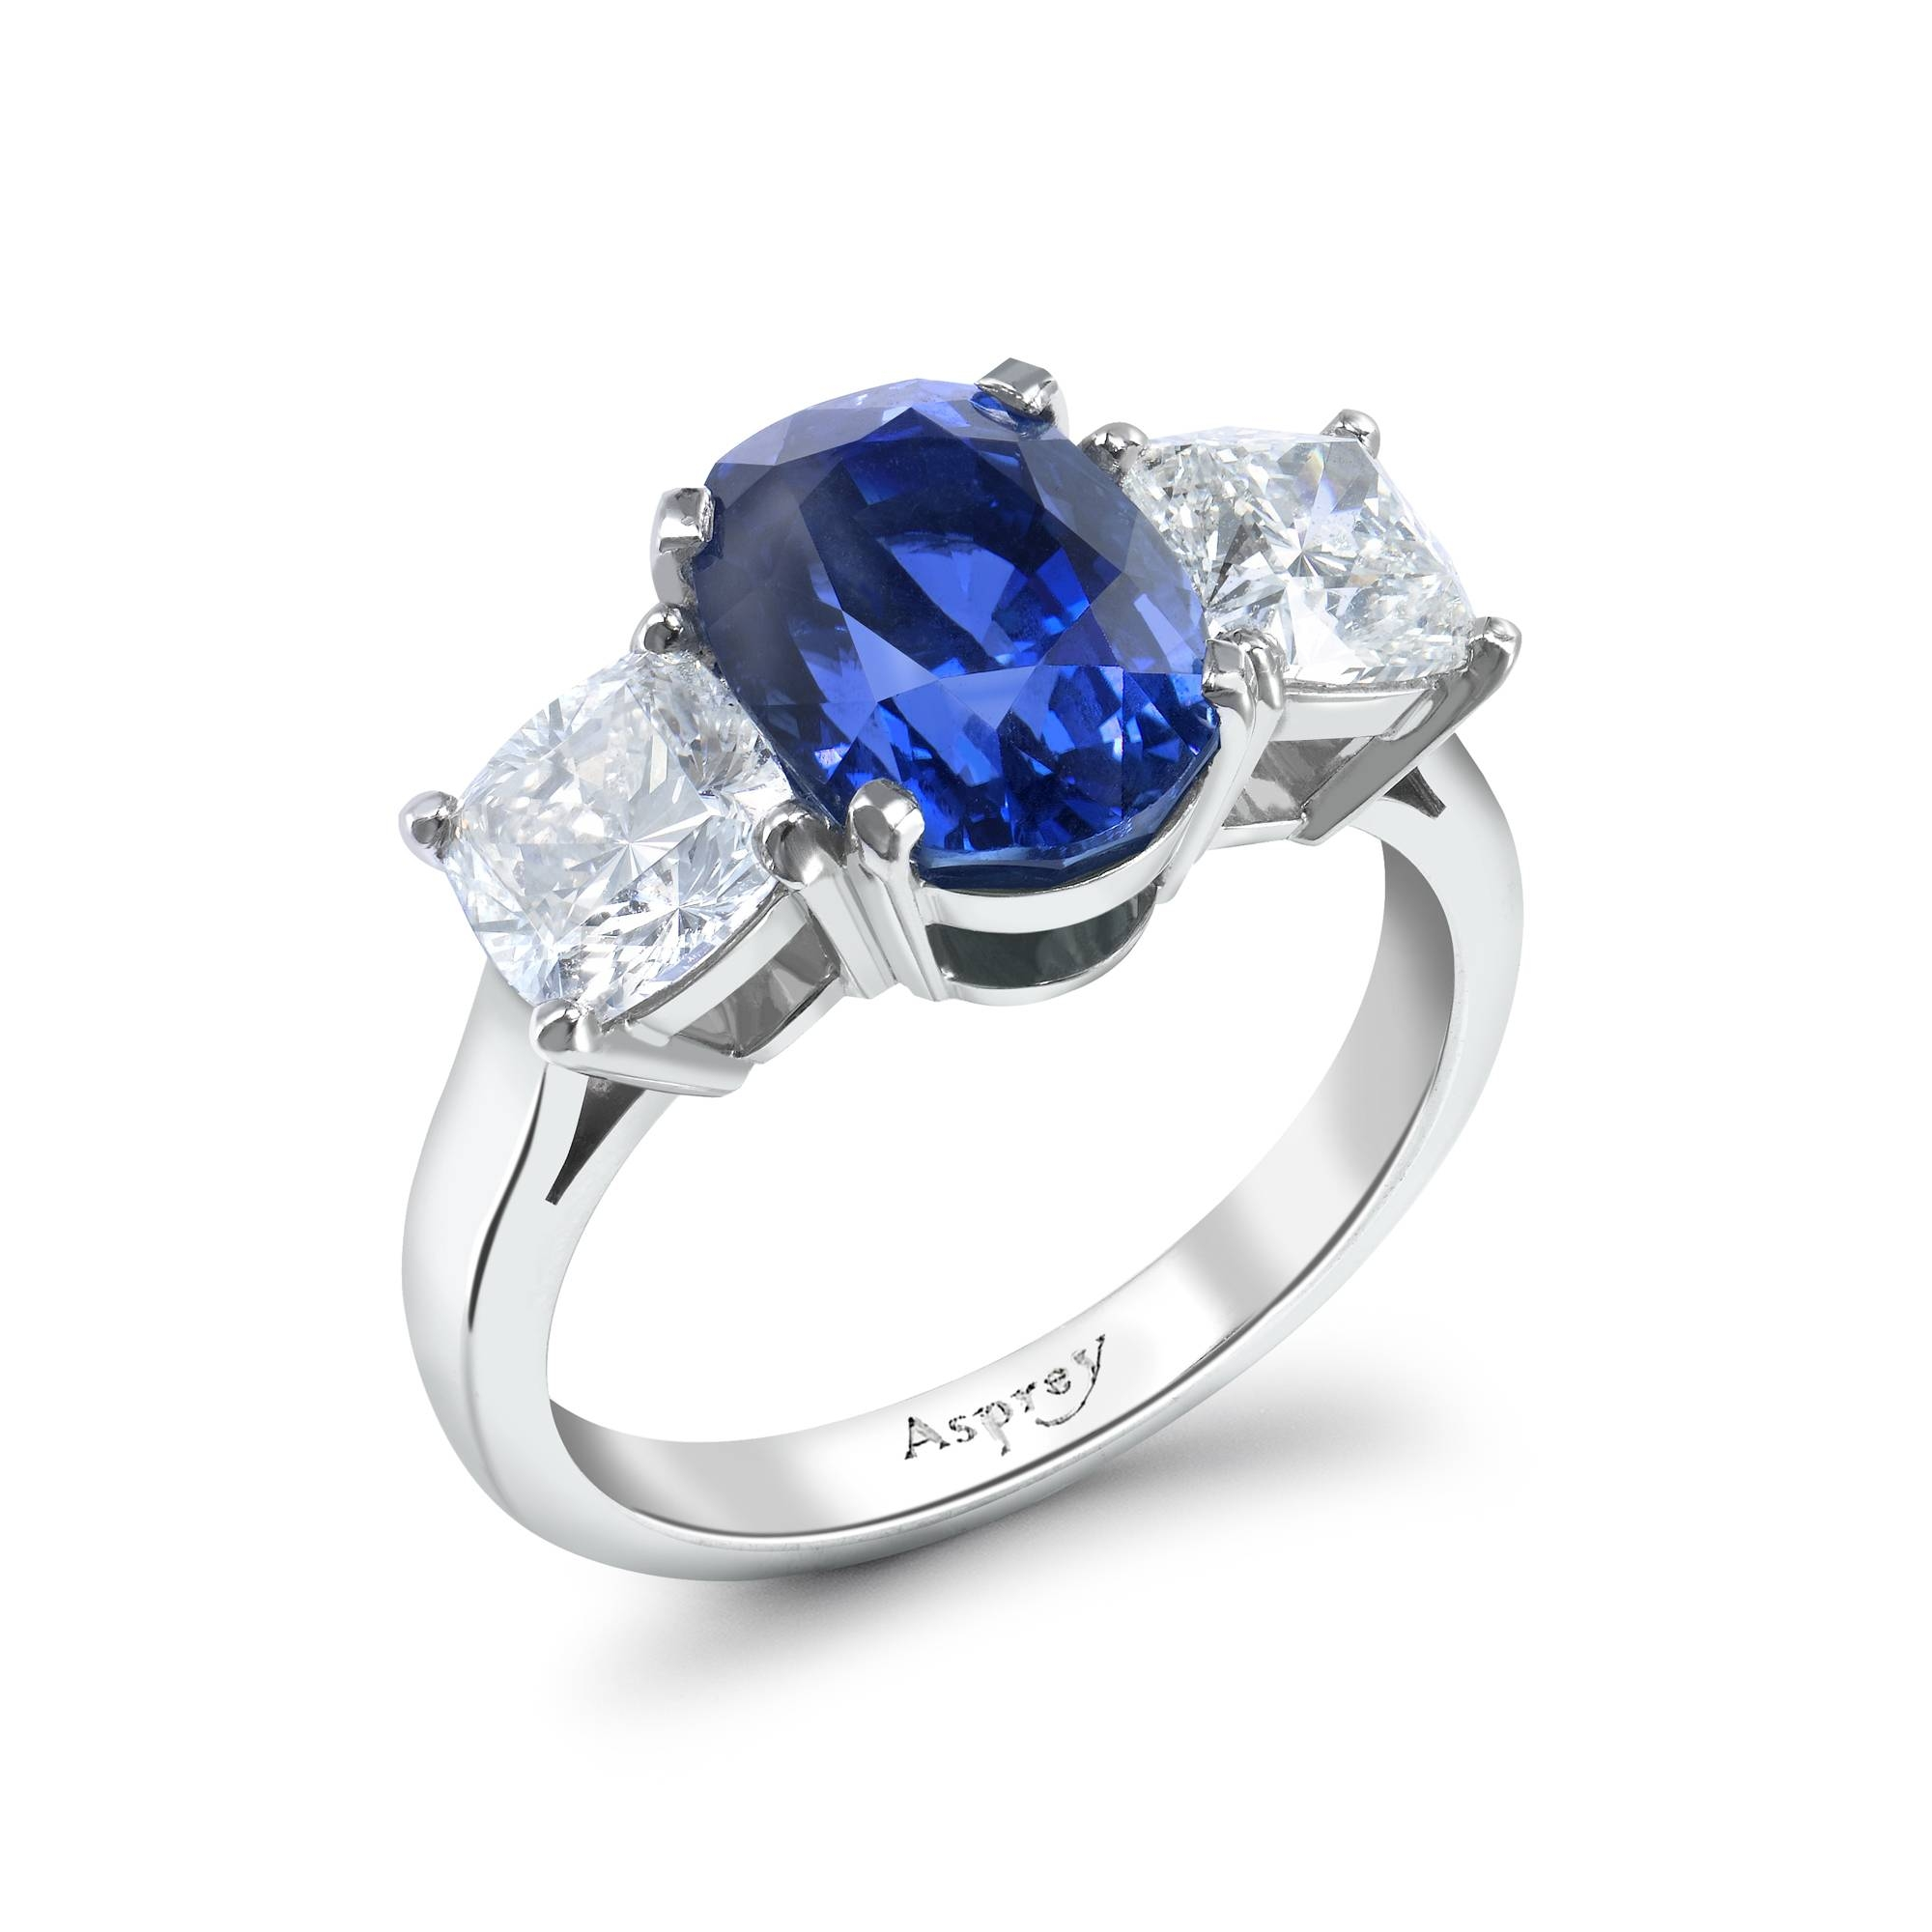 Engagement Rings : Holts Rings Diamond Engagement Rings With Regarding Sapphires Engagement Rings (Gallery 4 of 15)